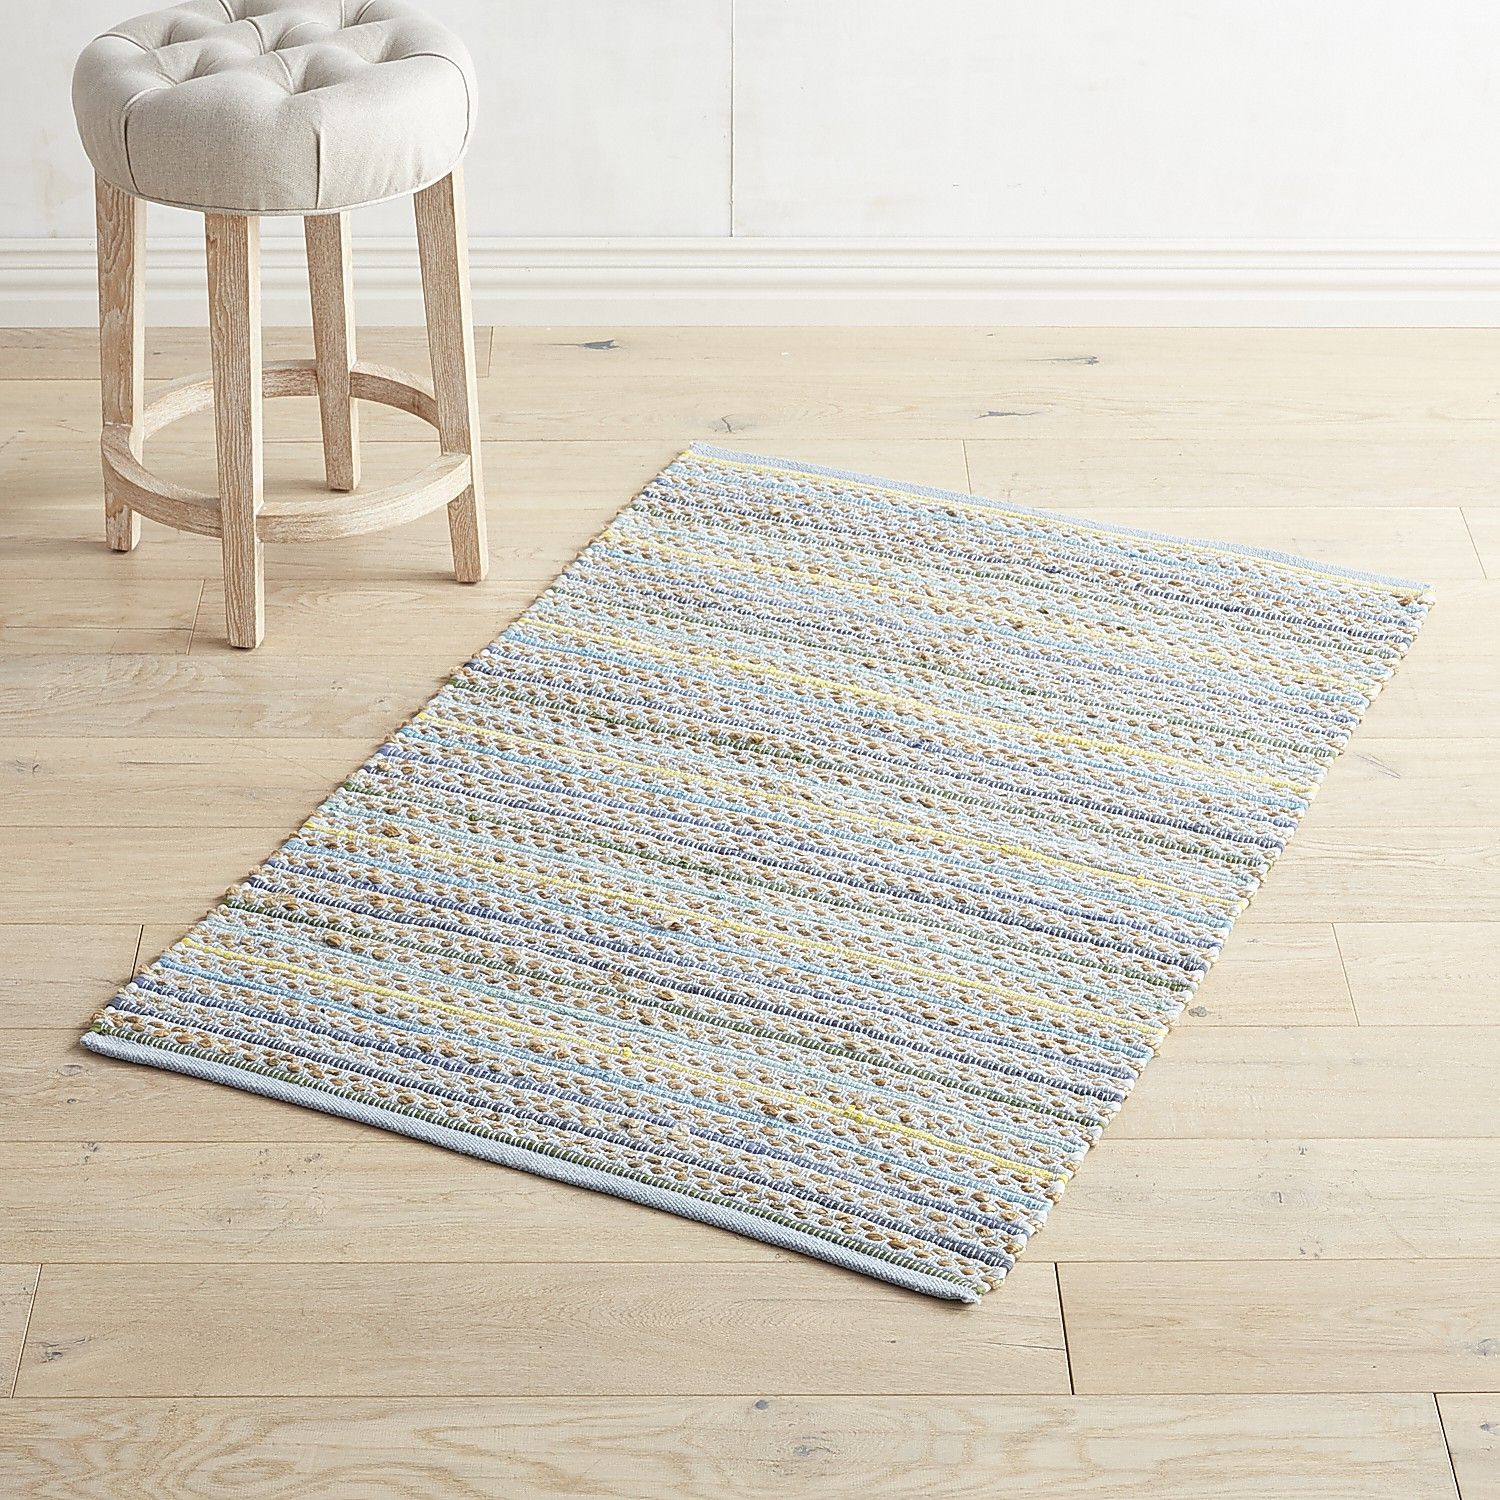 Chindi Jute Blue 3x5 Rug Pier 1 Index Pinterest Rugs Accent